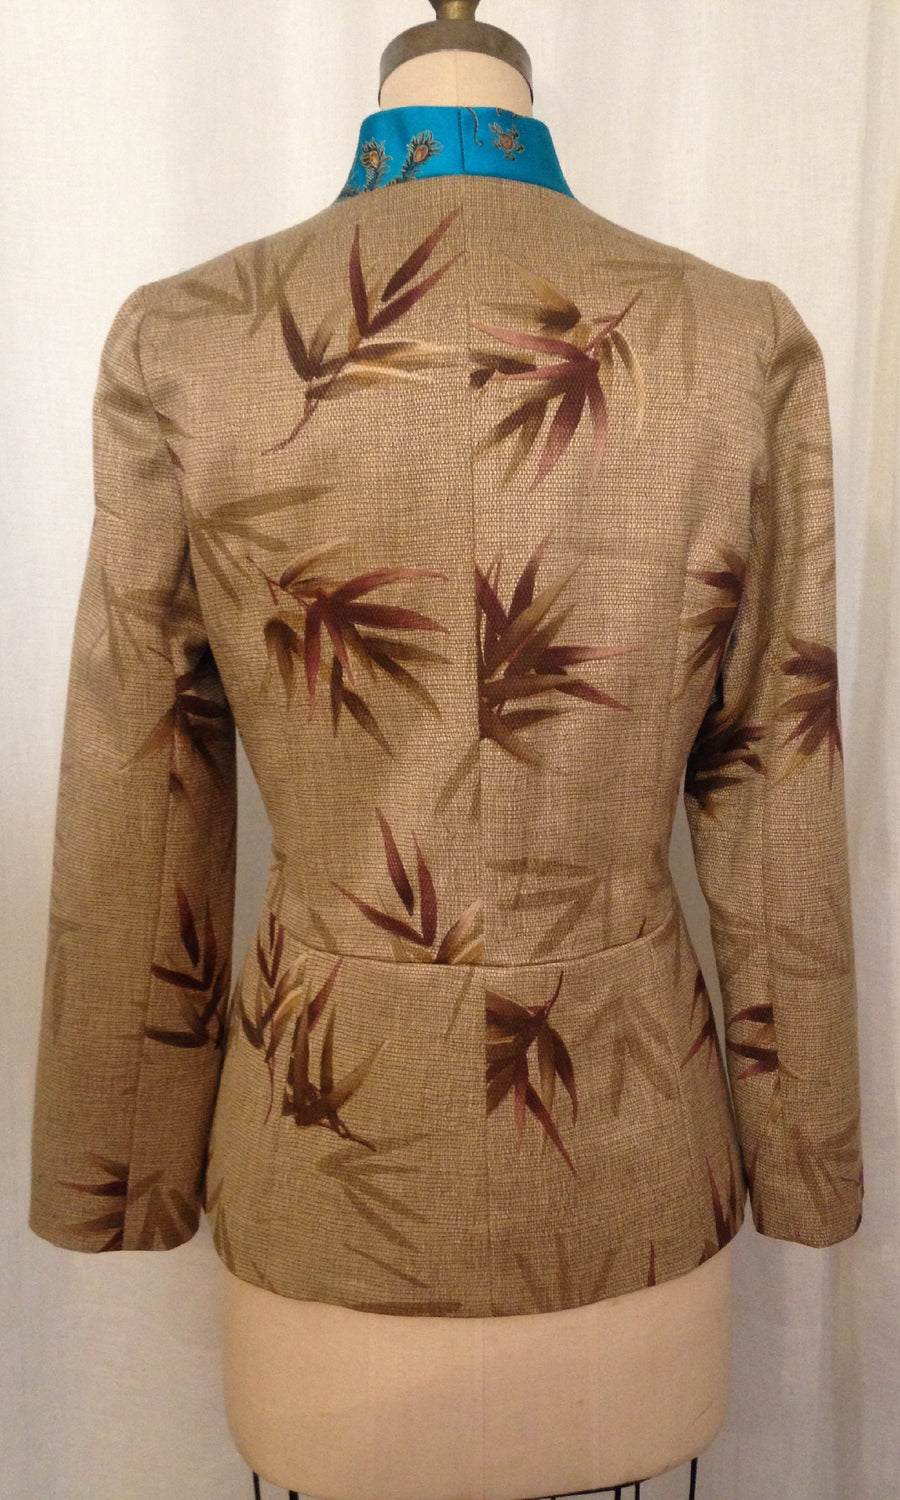 Brocade & Bamboo Edwardian Jacket, Size Medium